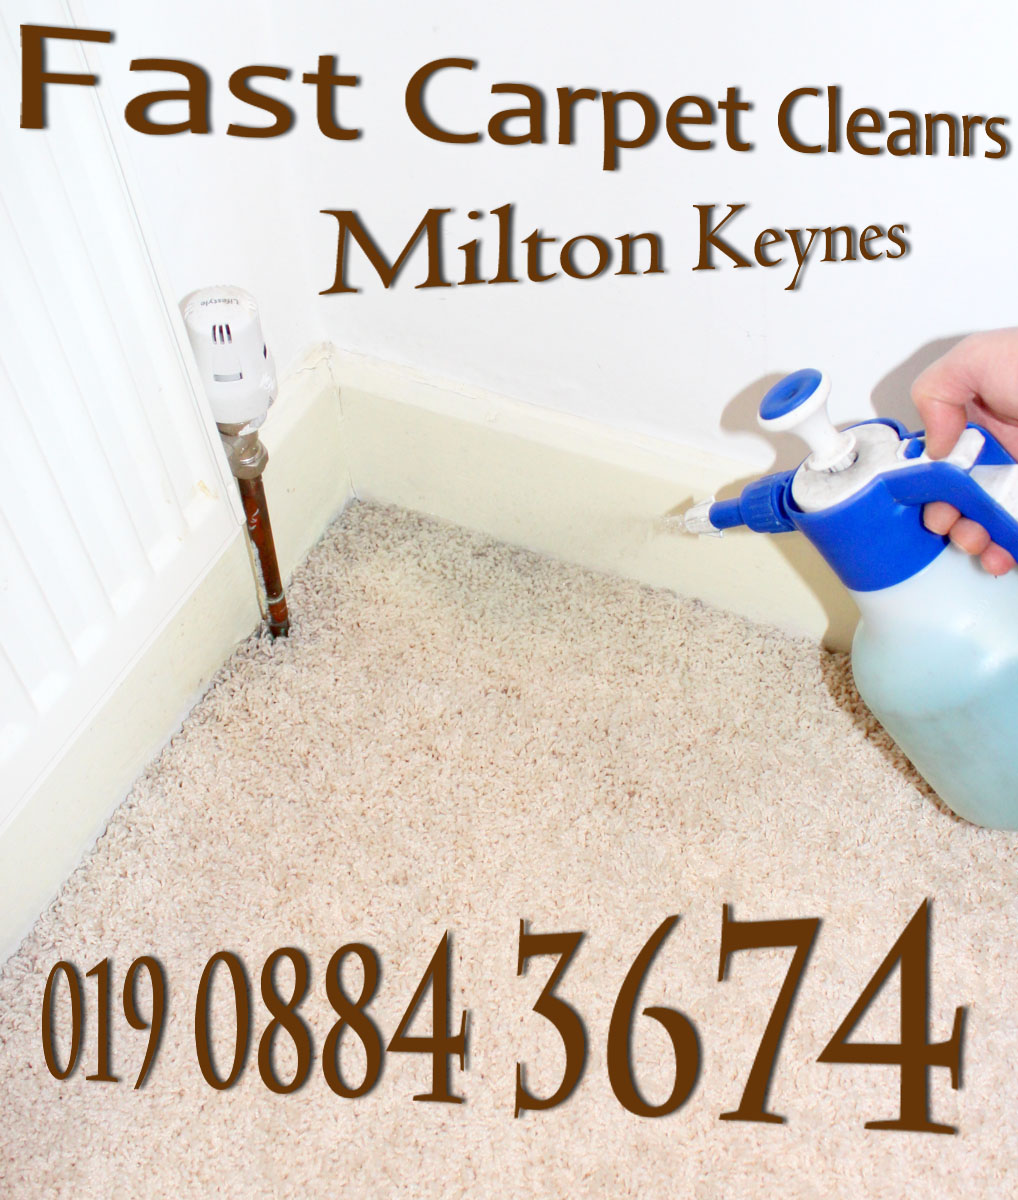 Fast Carpet Cleaners logo